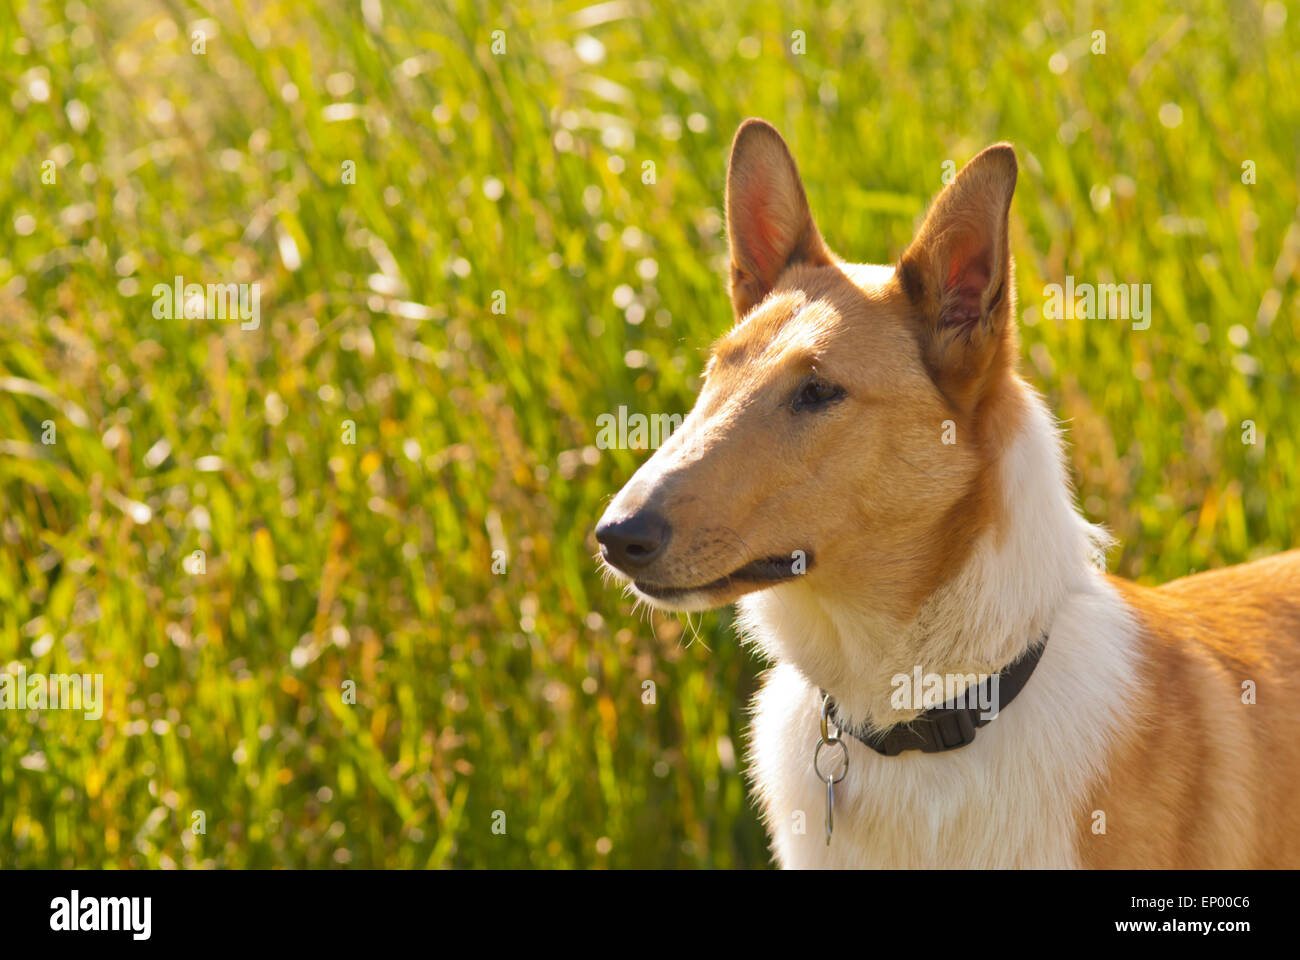 Portrait of a smooth collie dog, Canis lupus familiaris, in the early morning sunlight - Stock Image